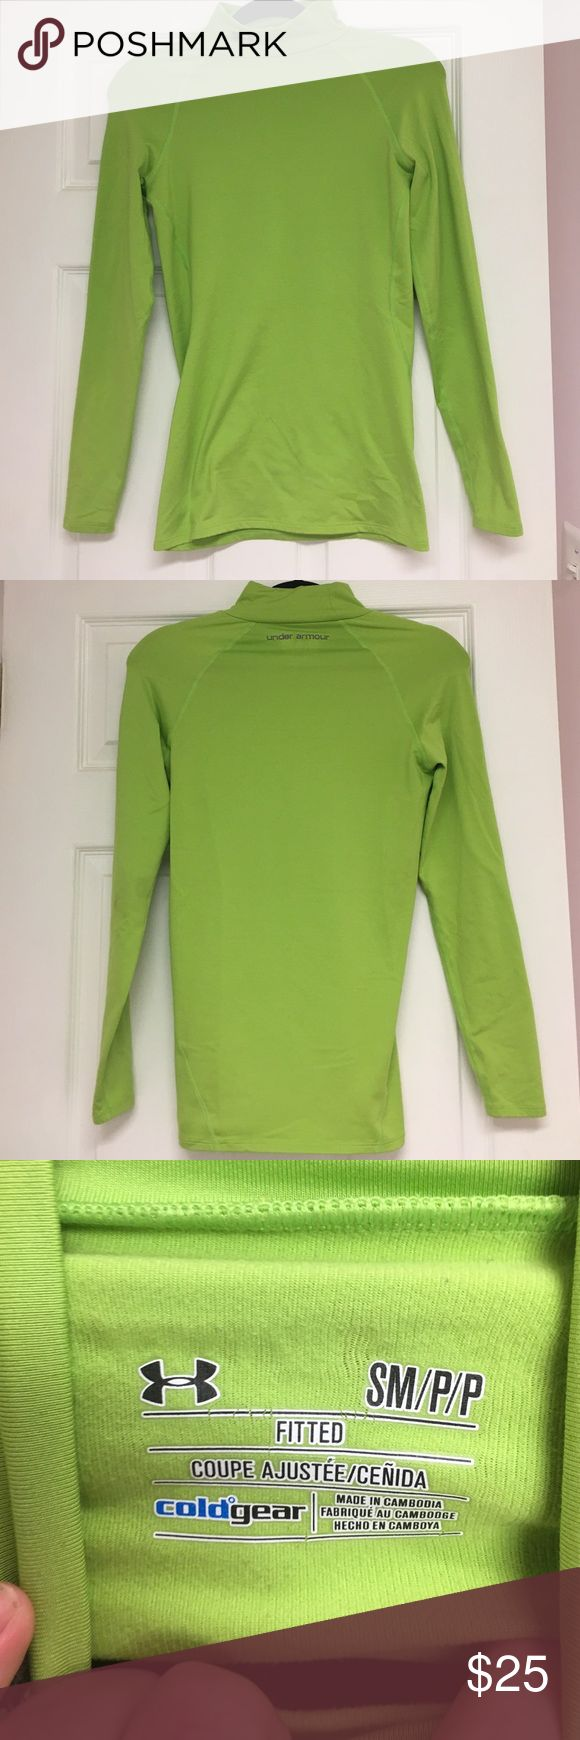 Under Armour Cold Gear Green long sleeved top- SM This Under Armour Cold Gear Lime Green long sleeved top (size small) is perfect for those chilly days! This is in excellent condition! With the neck and the fitted nature of this top, it will keep you warm and also look super cute! Under Armour Tops